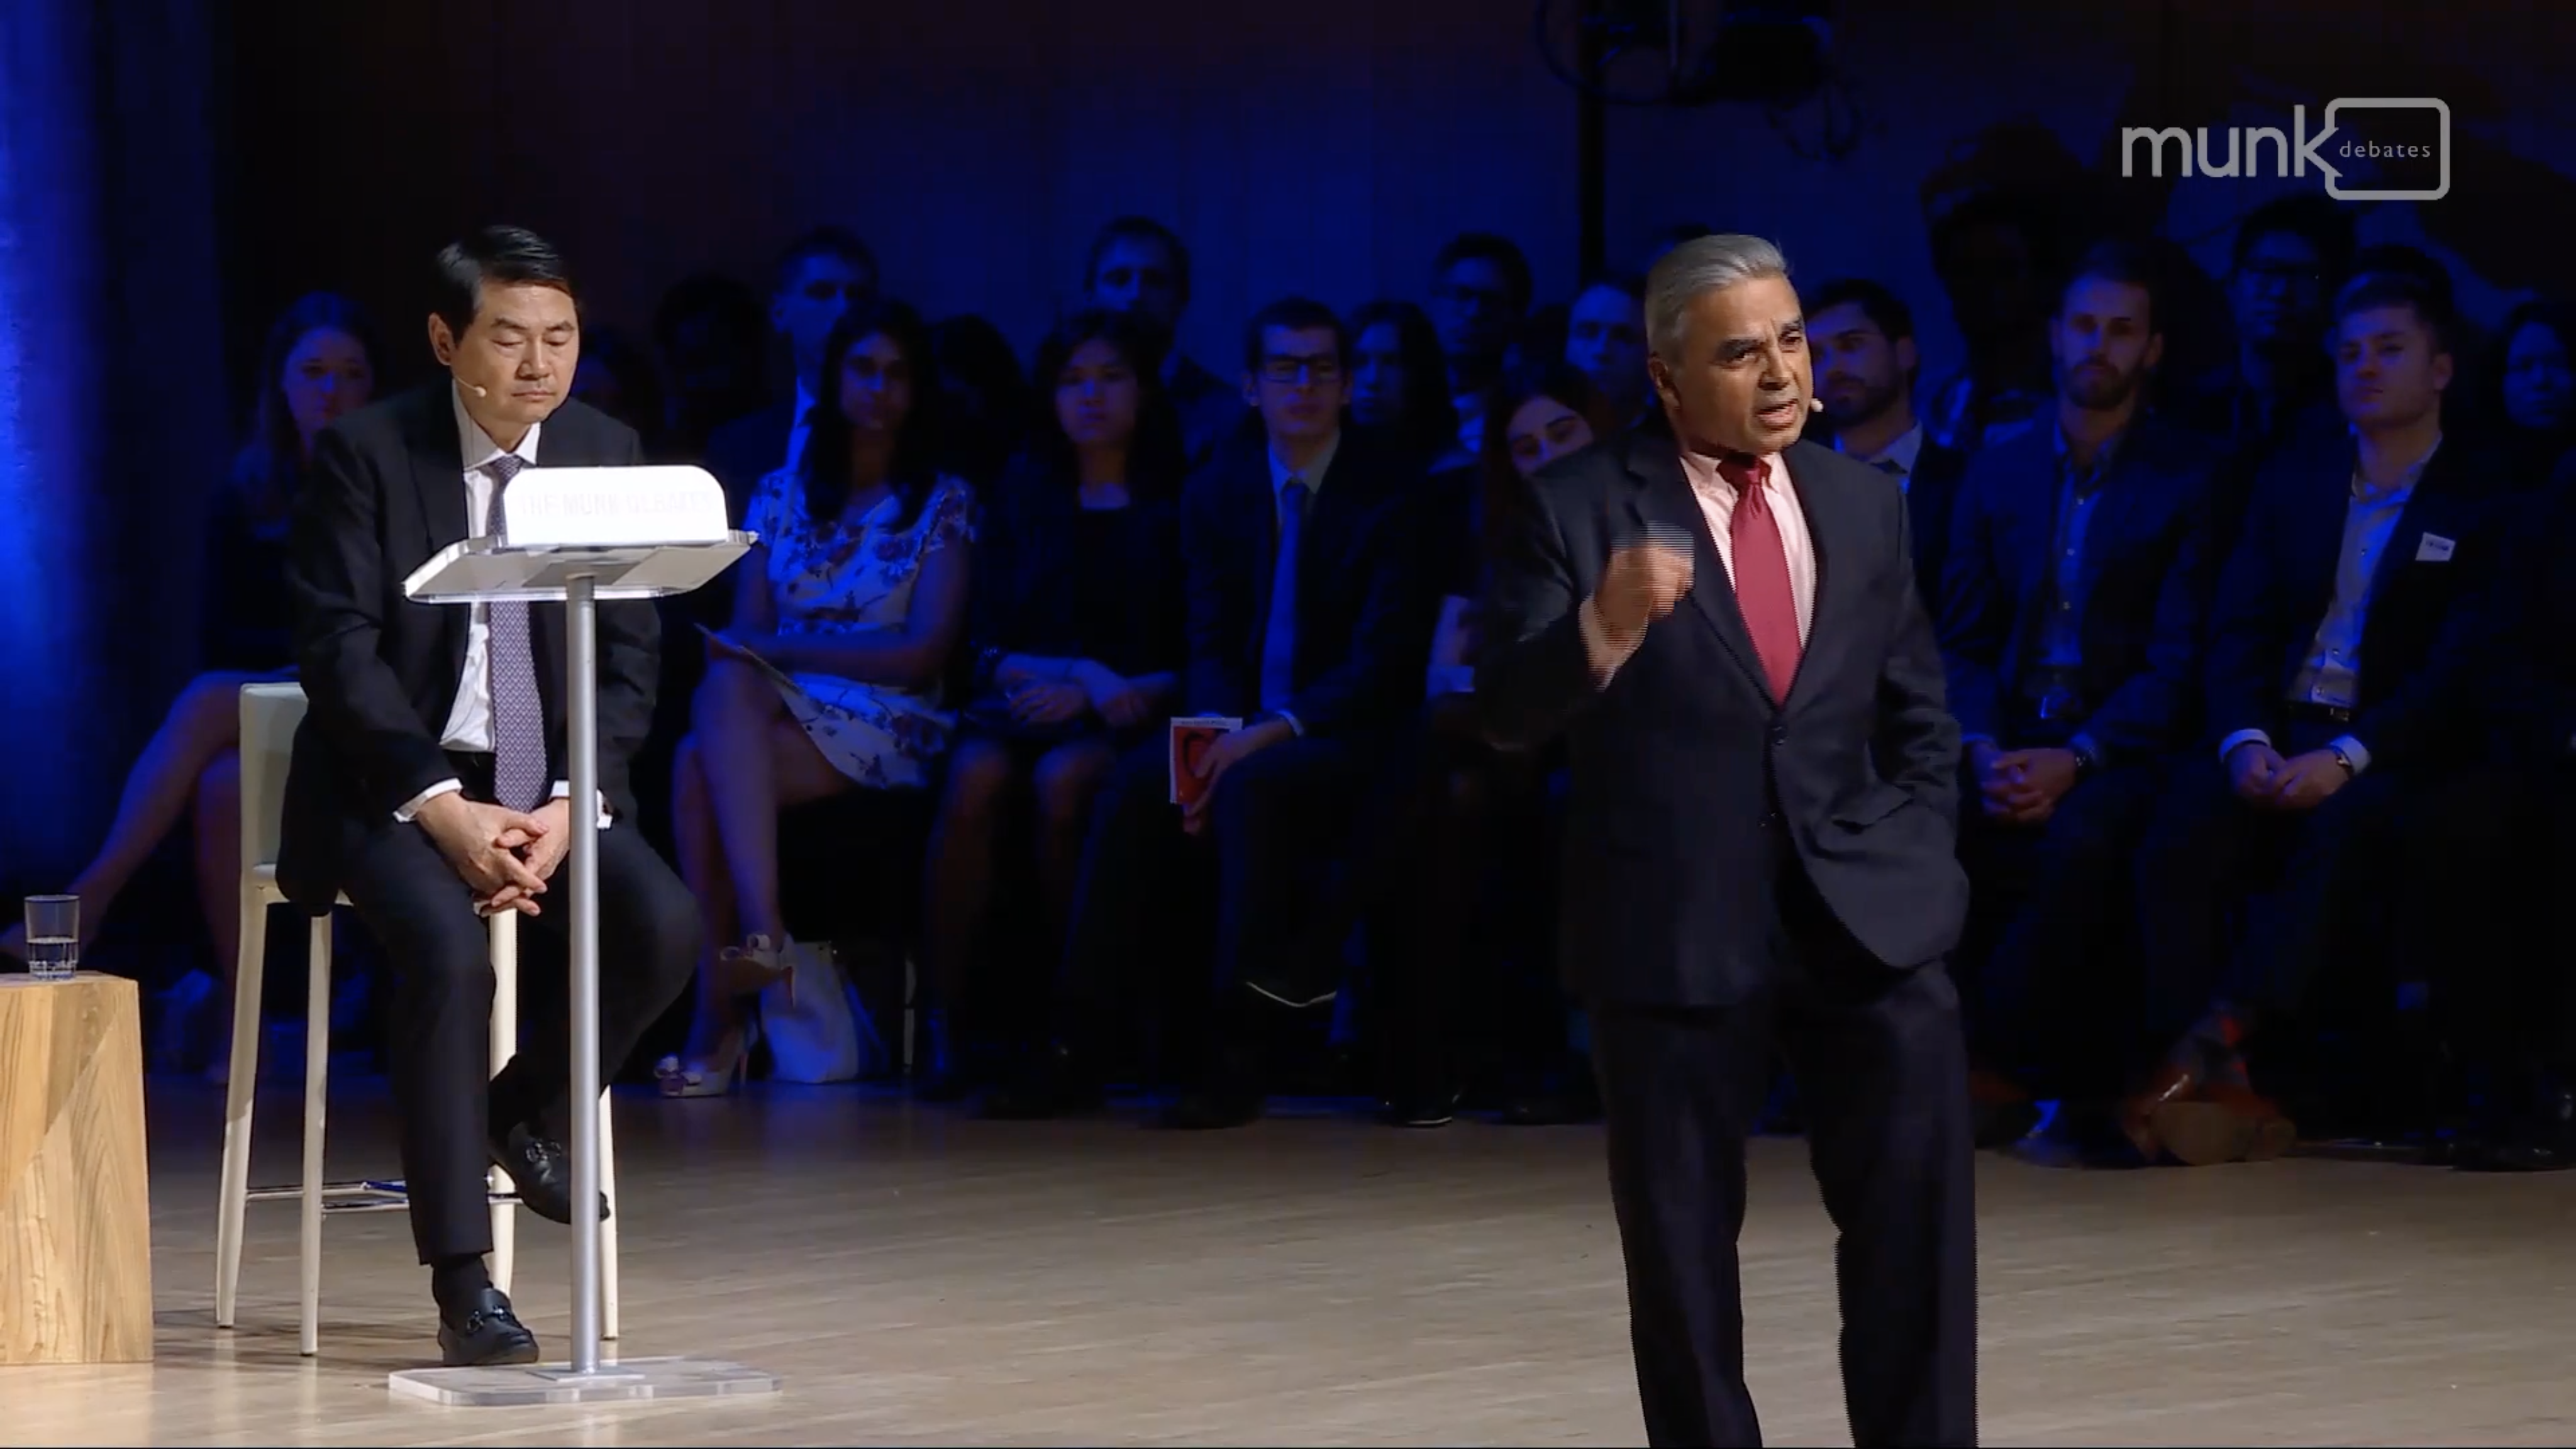 China Professor Kishore Mahbubani Closing Statement video